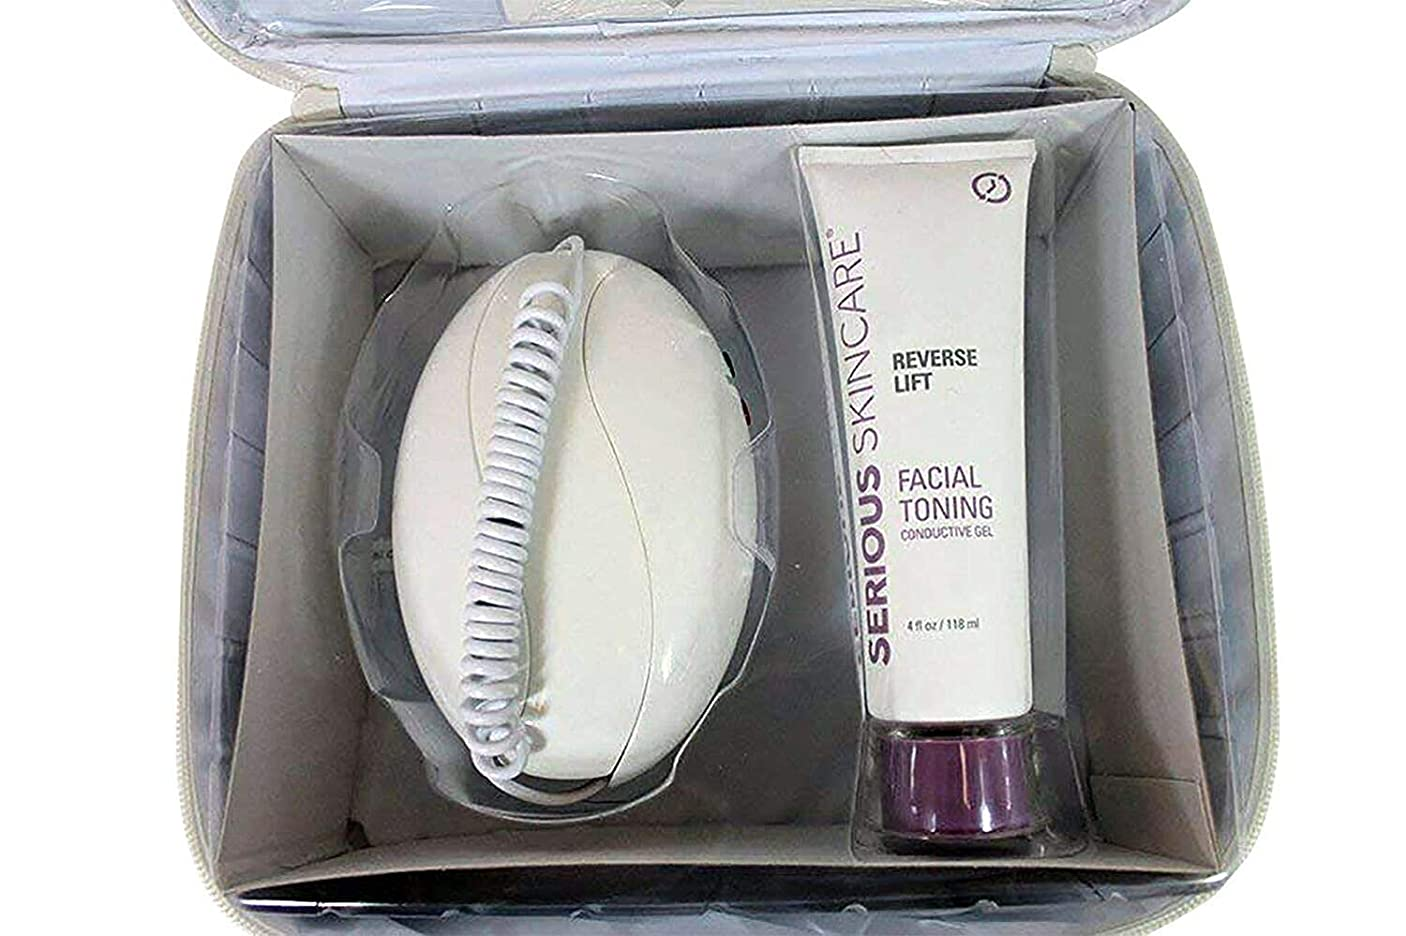 平らな製品広げるMicrocurrent Skin Care Kit, High Frequency Facial Machine and Skin Care Products 141[並行輸入]